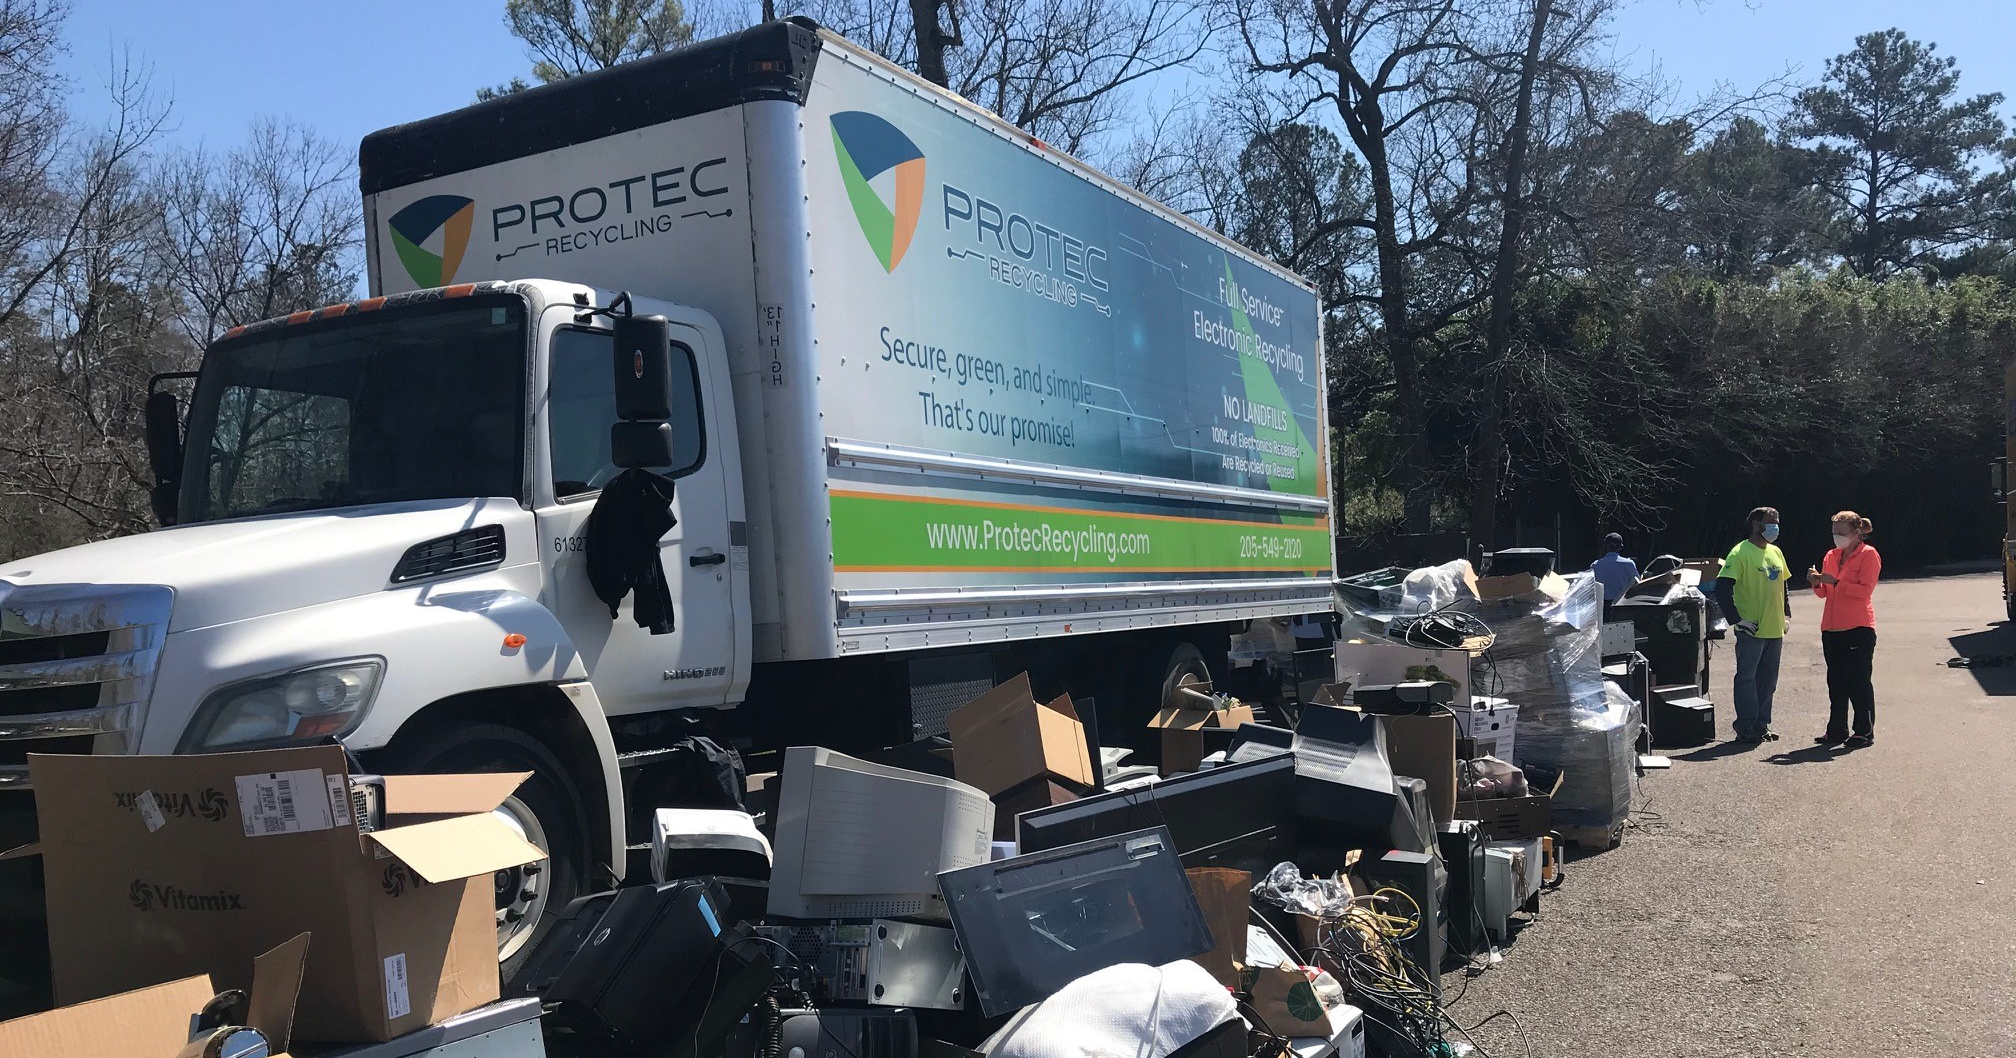 Jefferson County offers FREE E-Recycling for the community